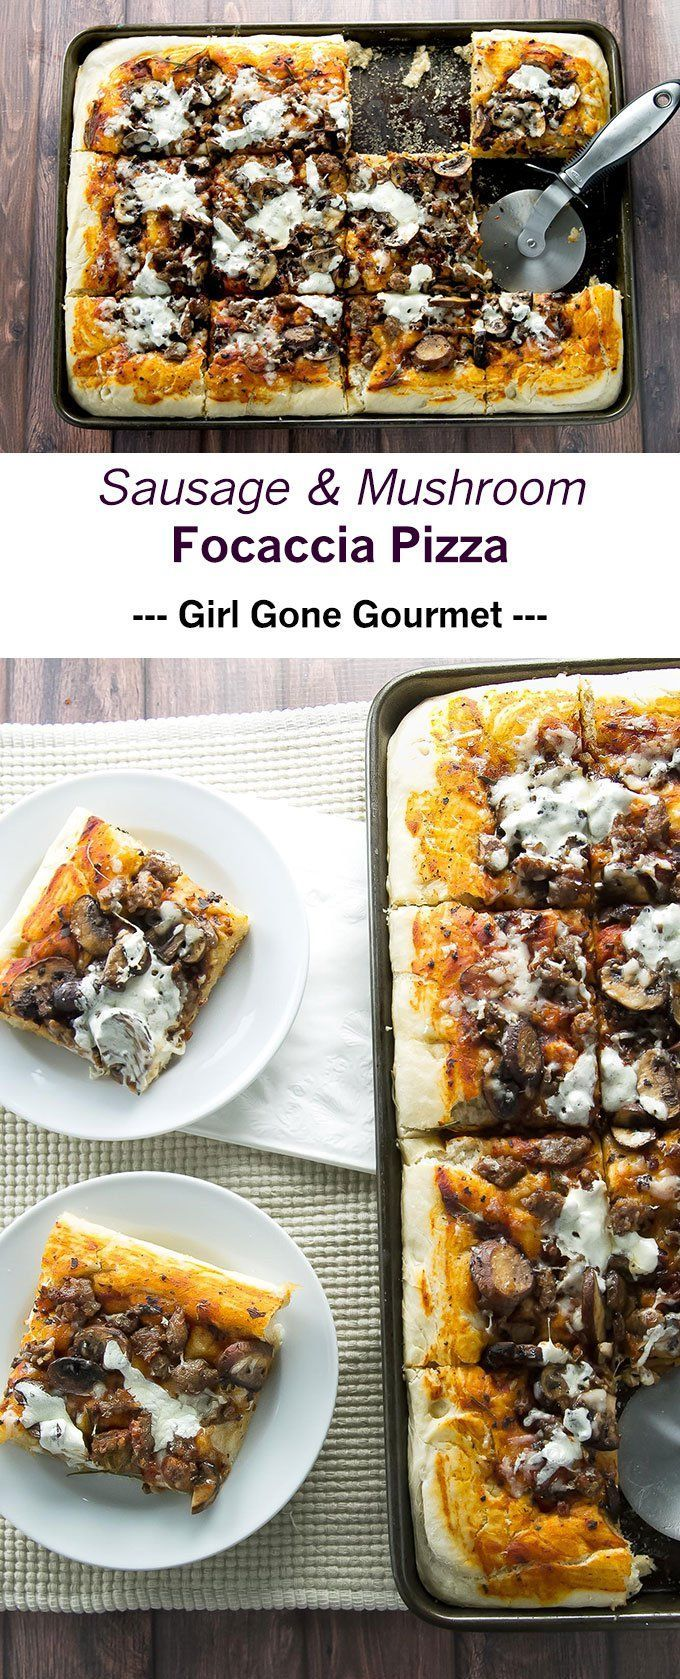 Pillow-y soft focaccia topped with Italian sausage, mushrooms, and cheese   girlgonegourmet.com